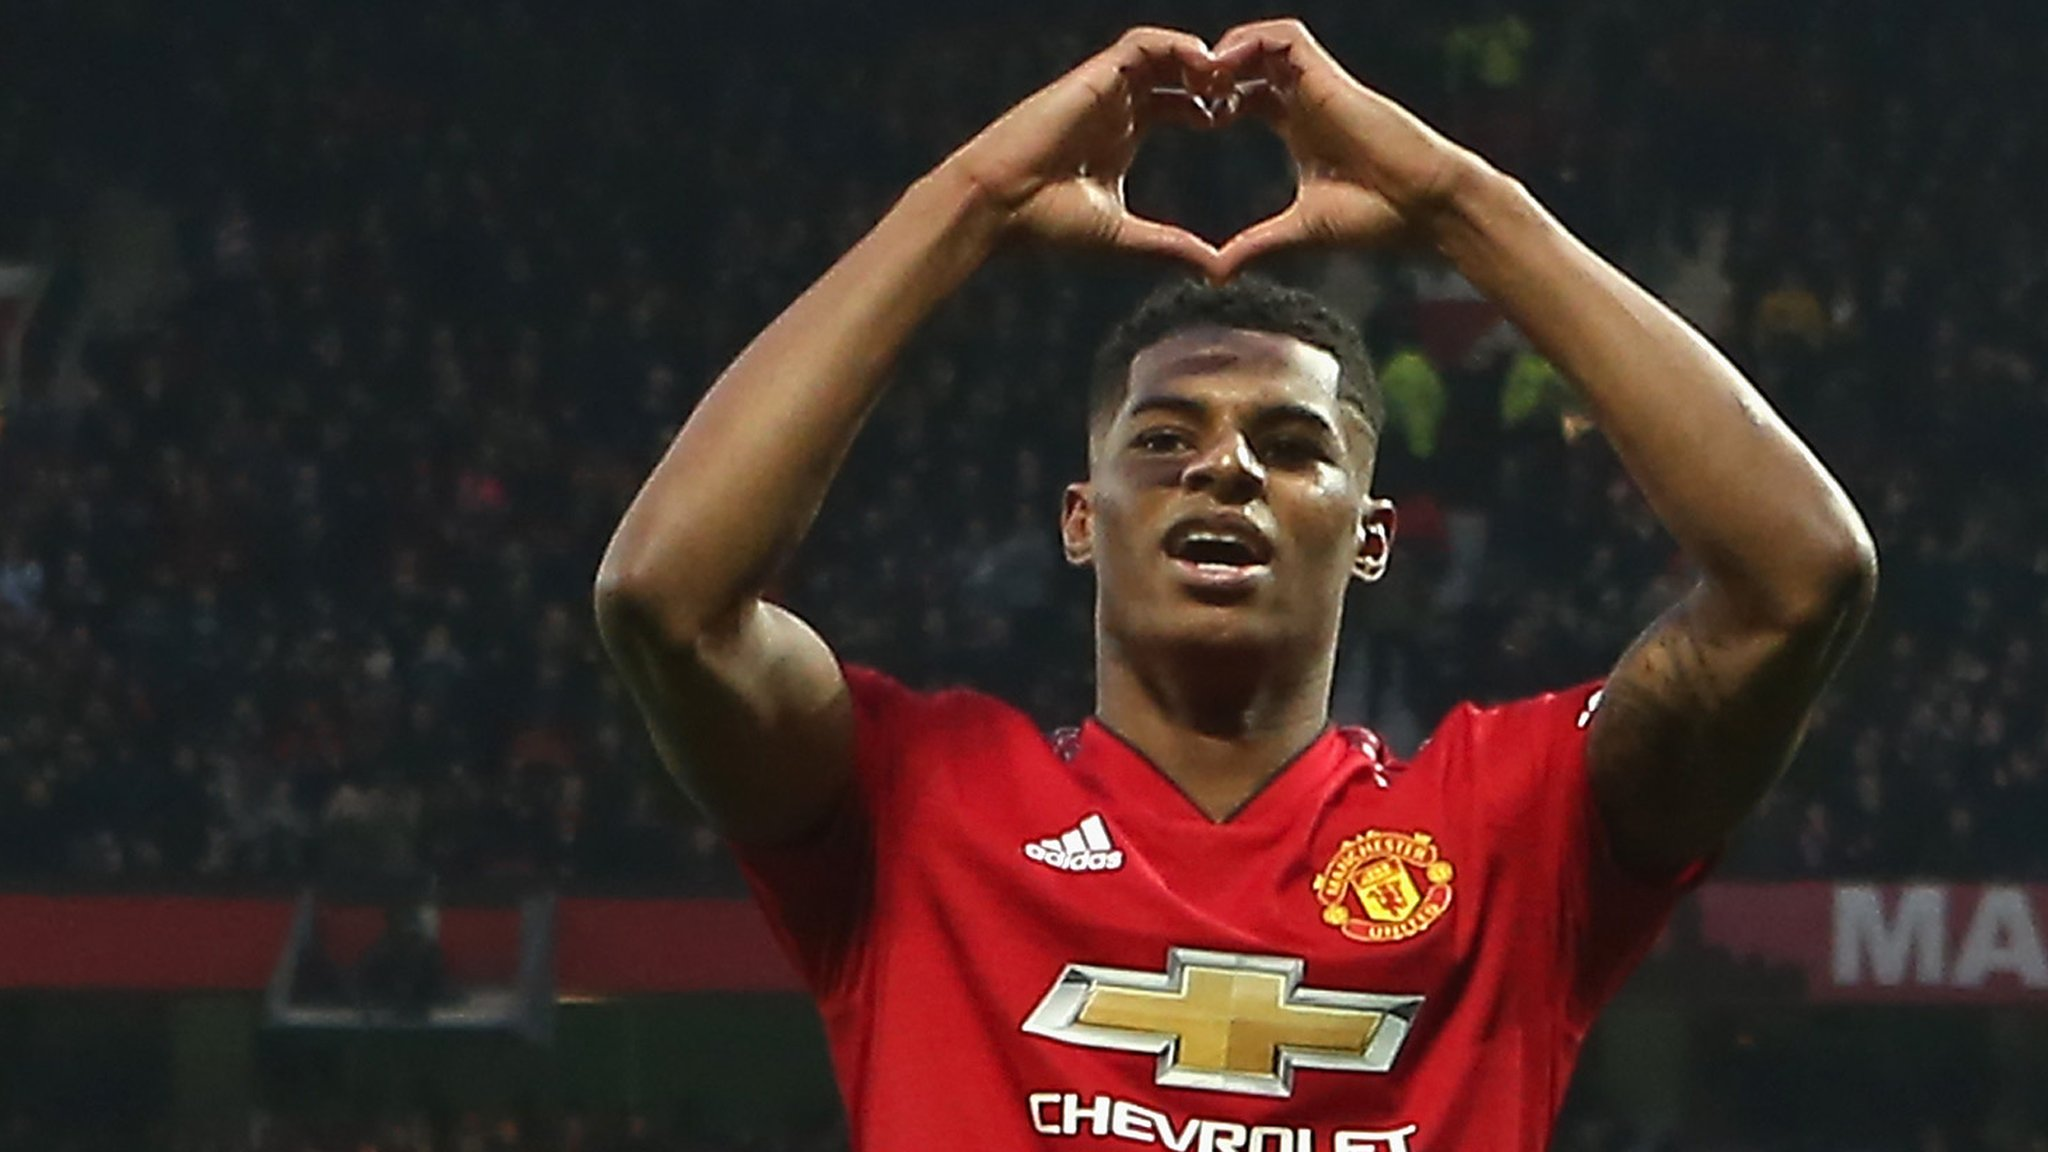 Manchester United 2-1 Brighton: Rashford's 'calm, assured' finishing praised by Solskjaer